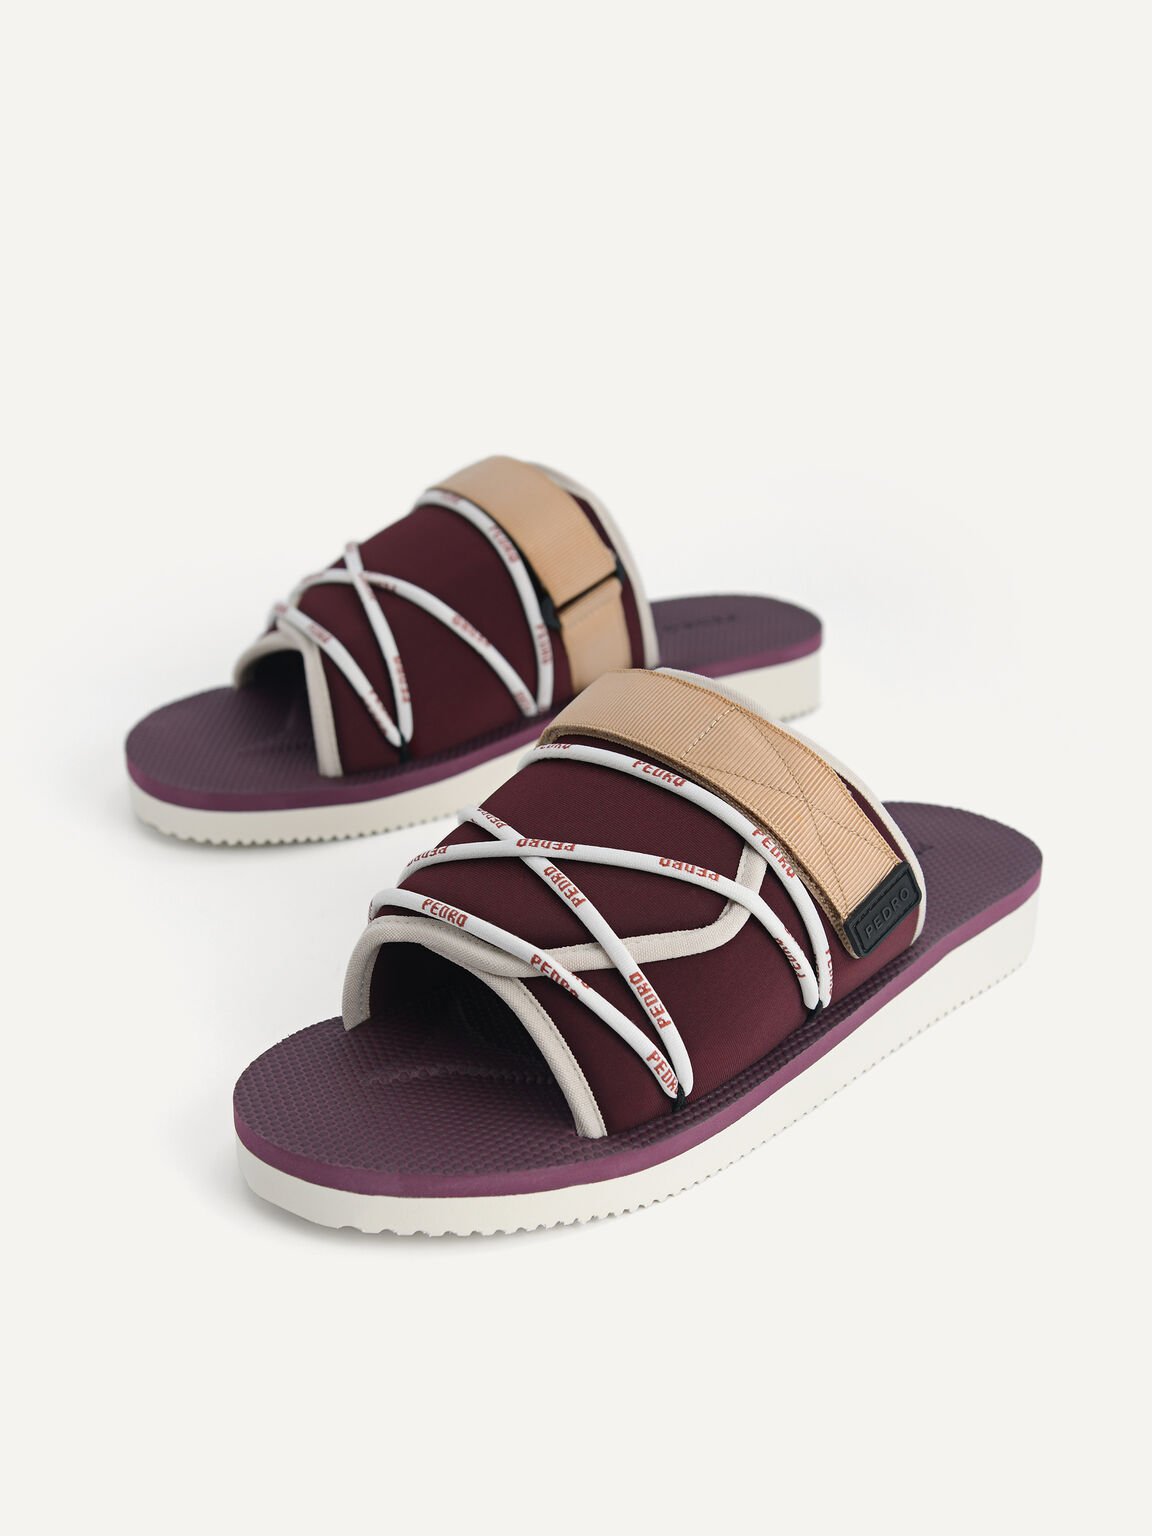 Casual Slides with Lace Detail, Maroon, hi-res